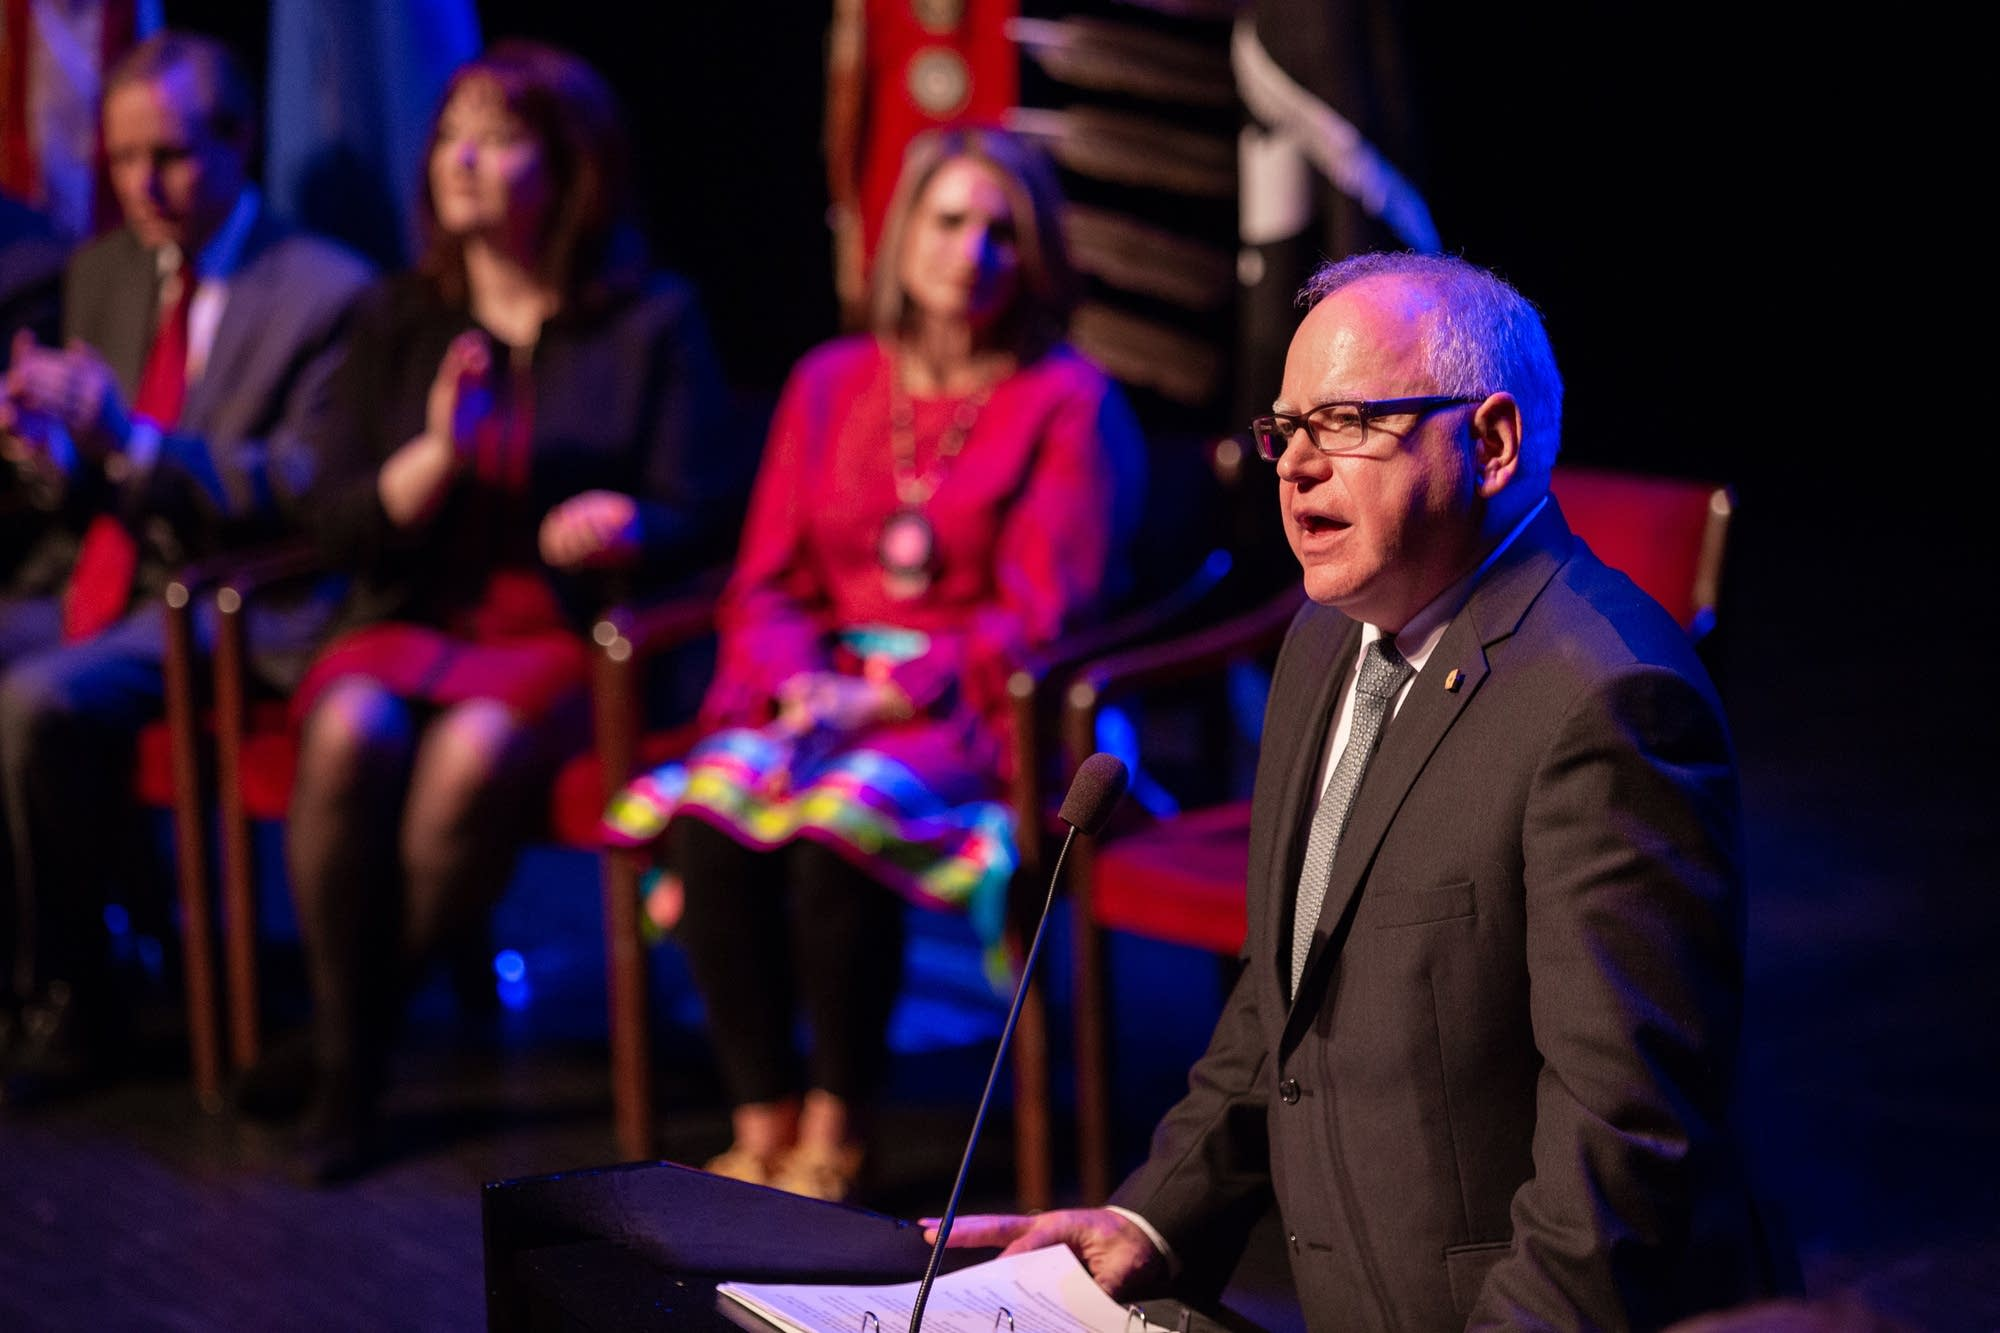 Governor Tim Walz delivers his inaugural address.